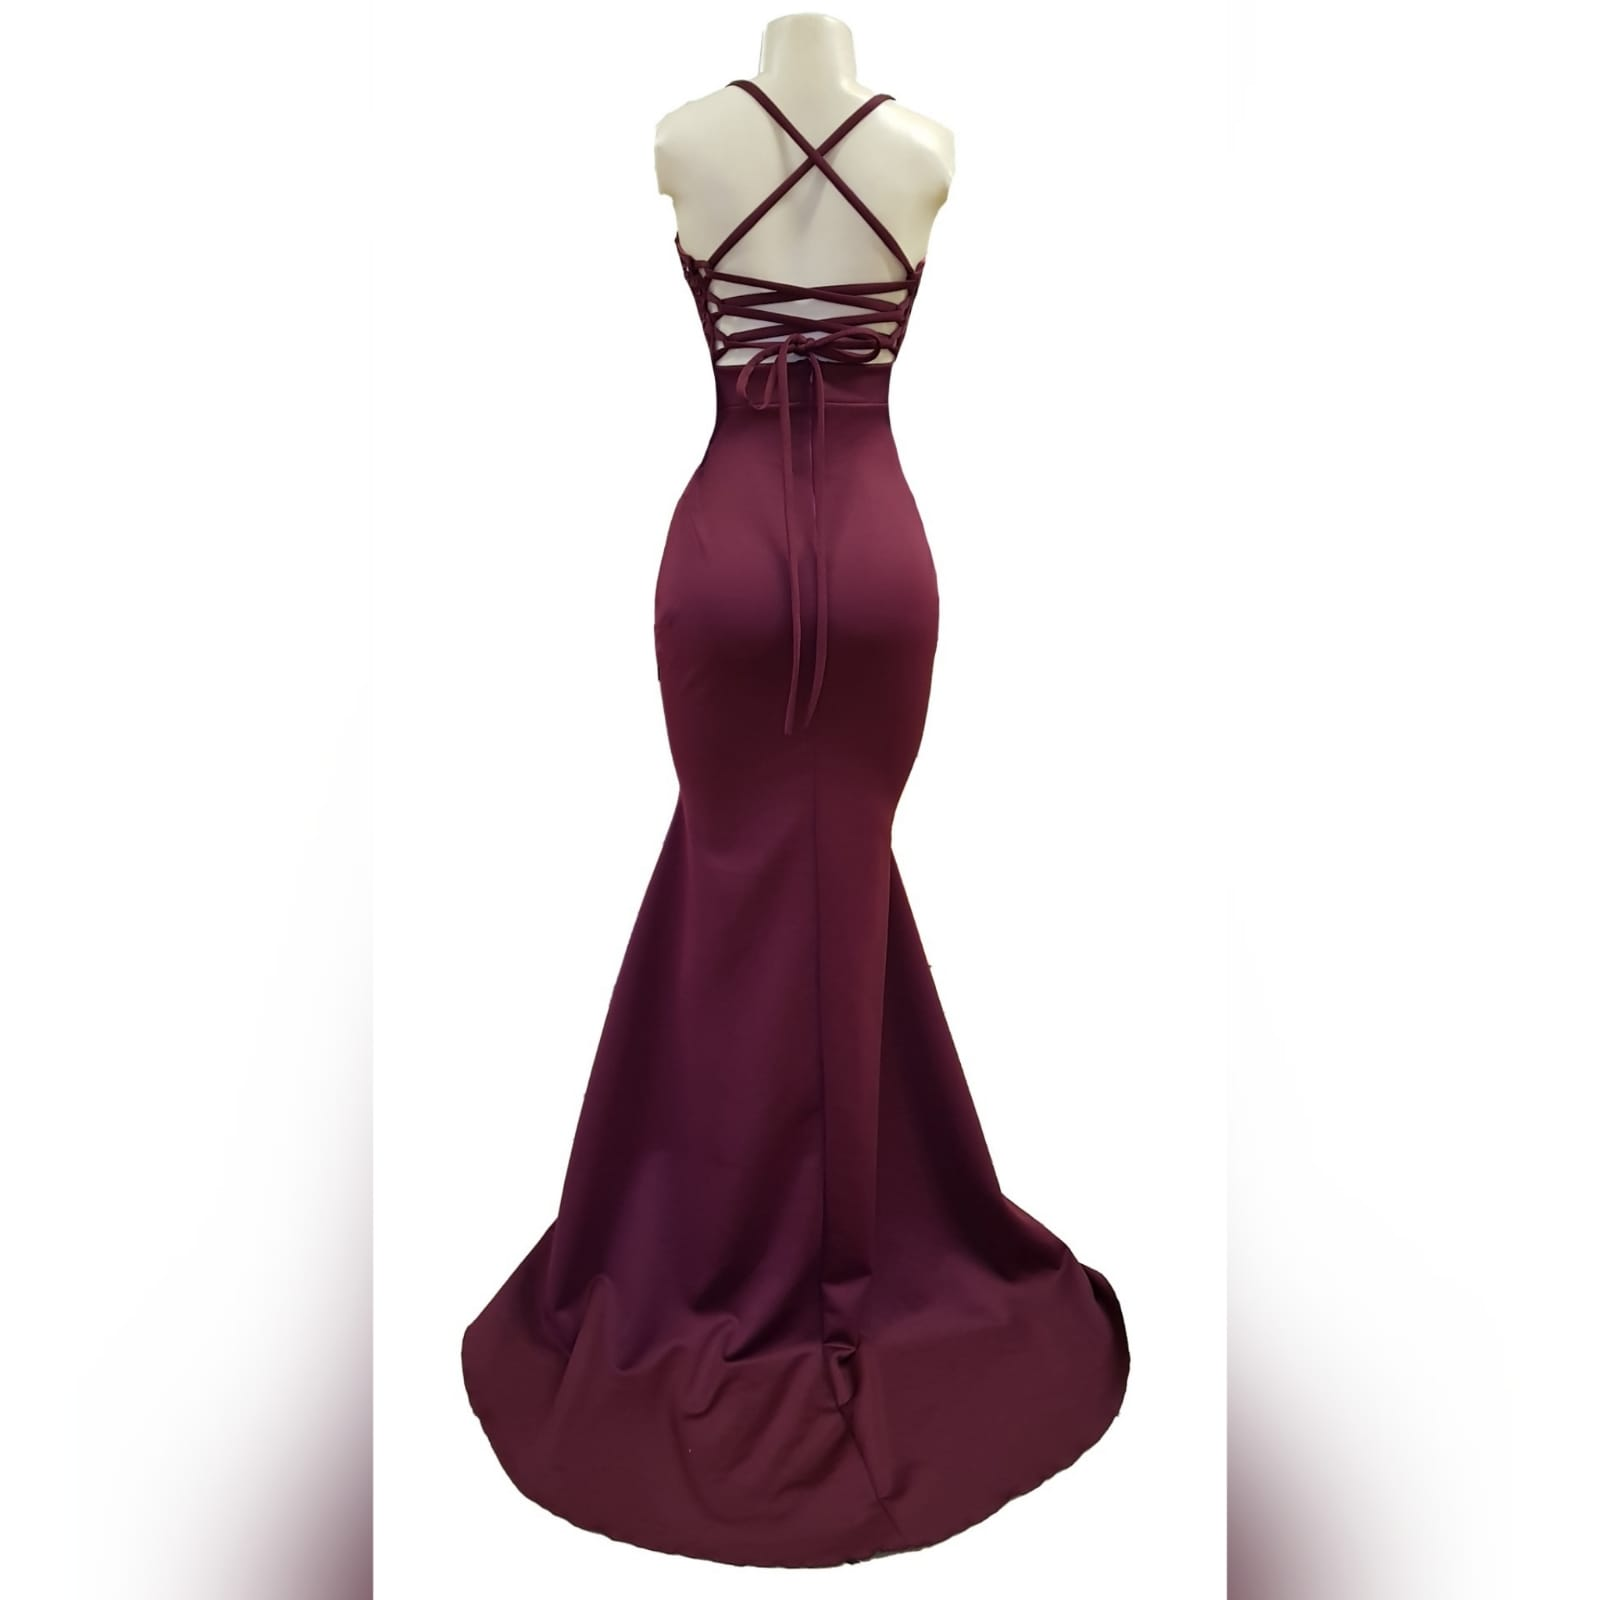 Burgundy soft mermaid plus size prom dress 8 burgundy soft mermaid plus size prom dress. Bodice detailed with lace and silver beads, small triangle opening on the waist with waistband finish. Open laceup back and a train.